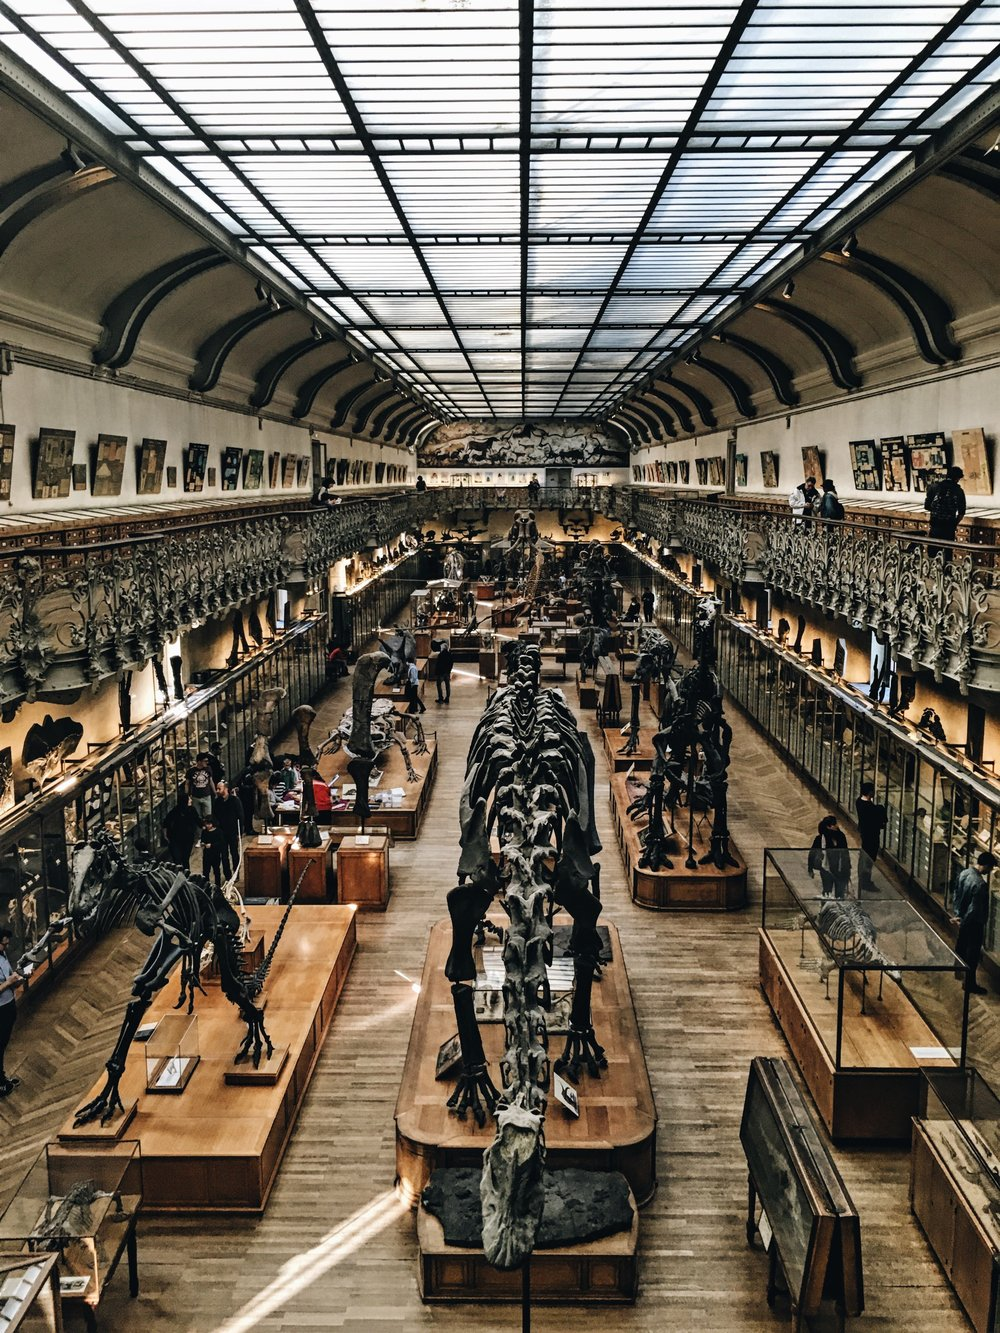 Very quiet dinosaurs, Paris France. Pic by  Anthony Delanoix.